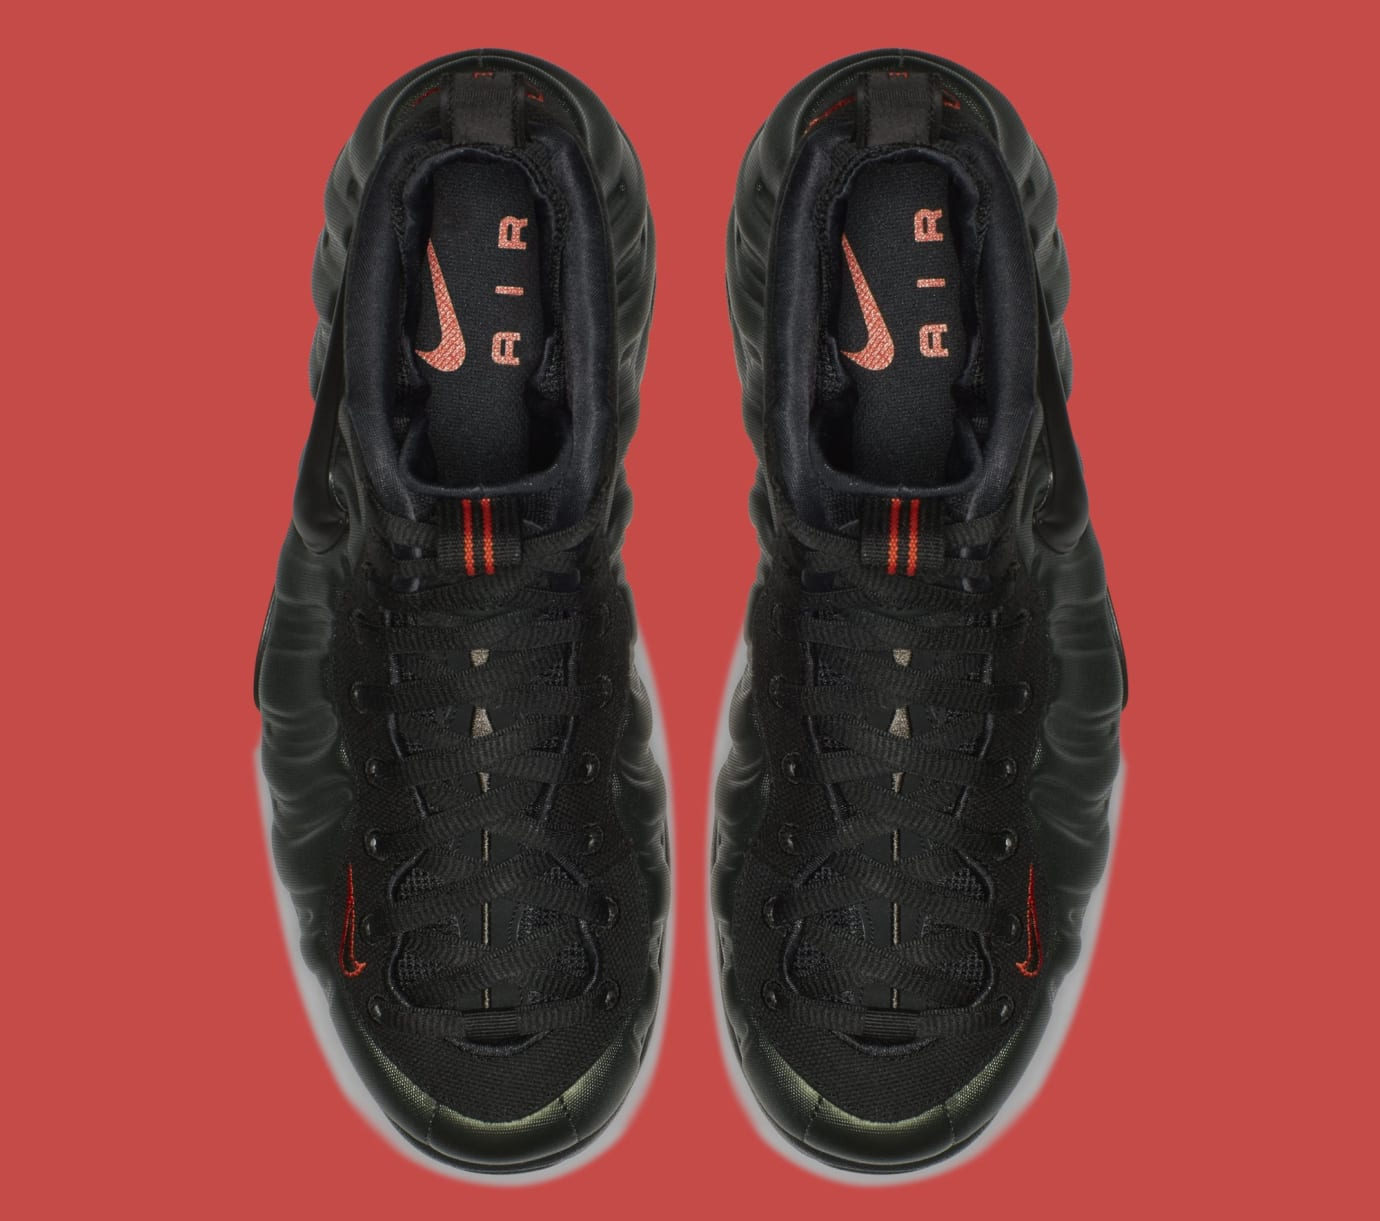 356c93b1fb8 Image via Nike Nike Air Foamposite Pro  Sequoia  624041-304 (Top)